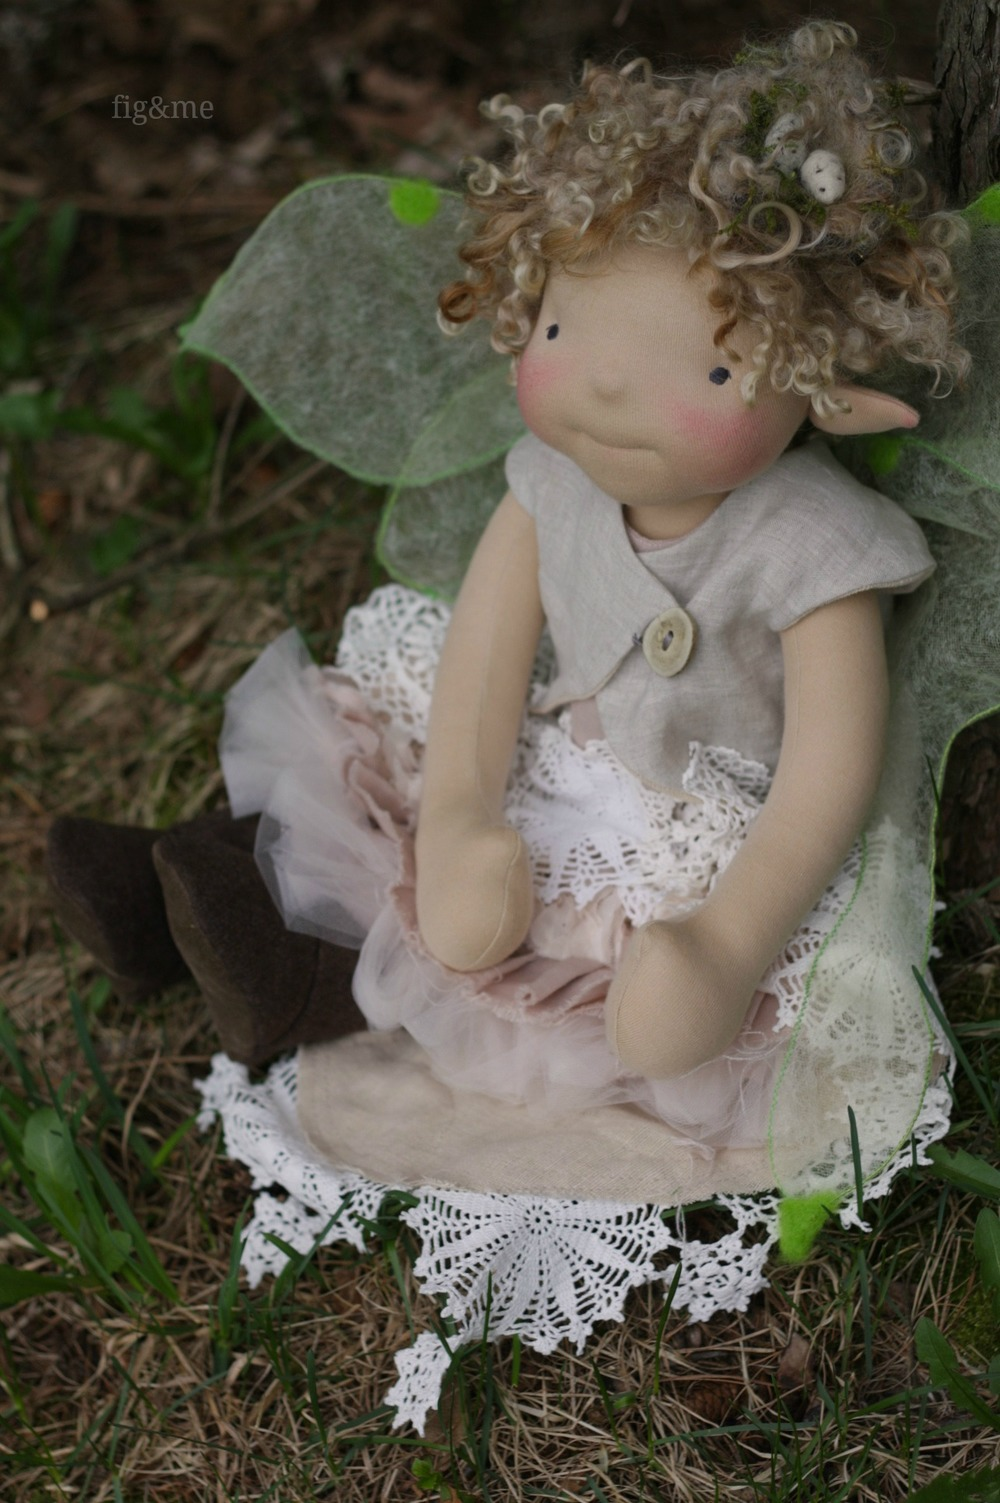 Fairy outfit, by Fig&me